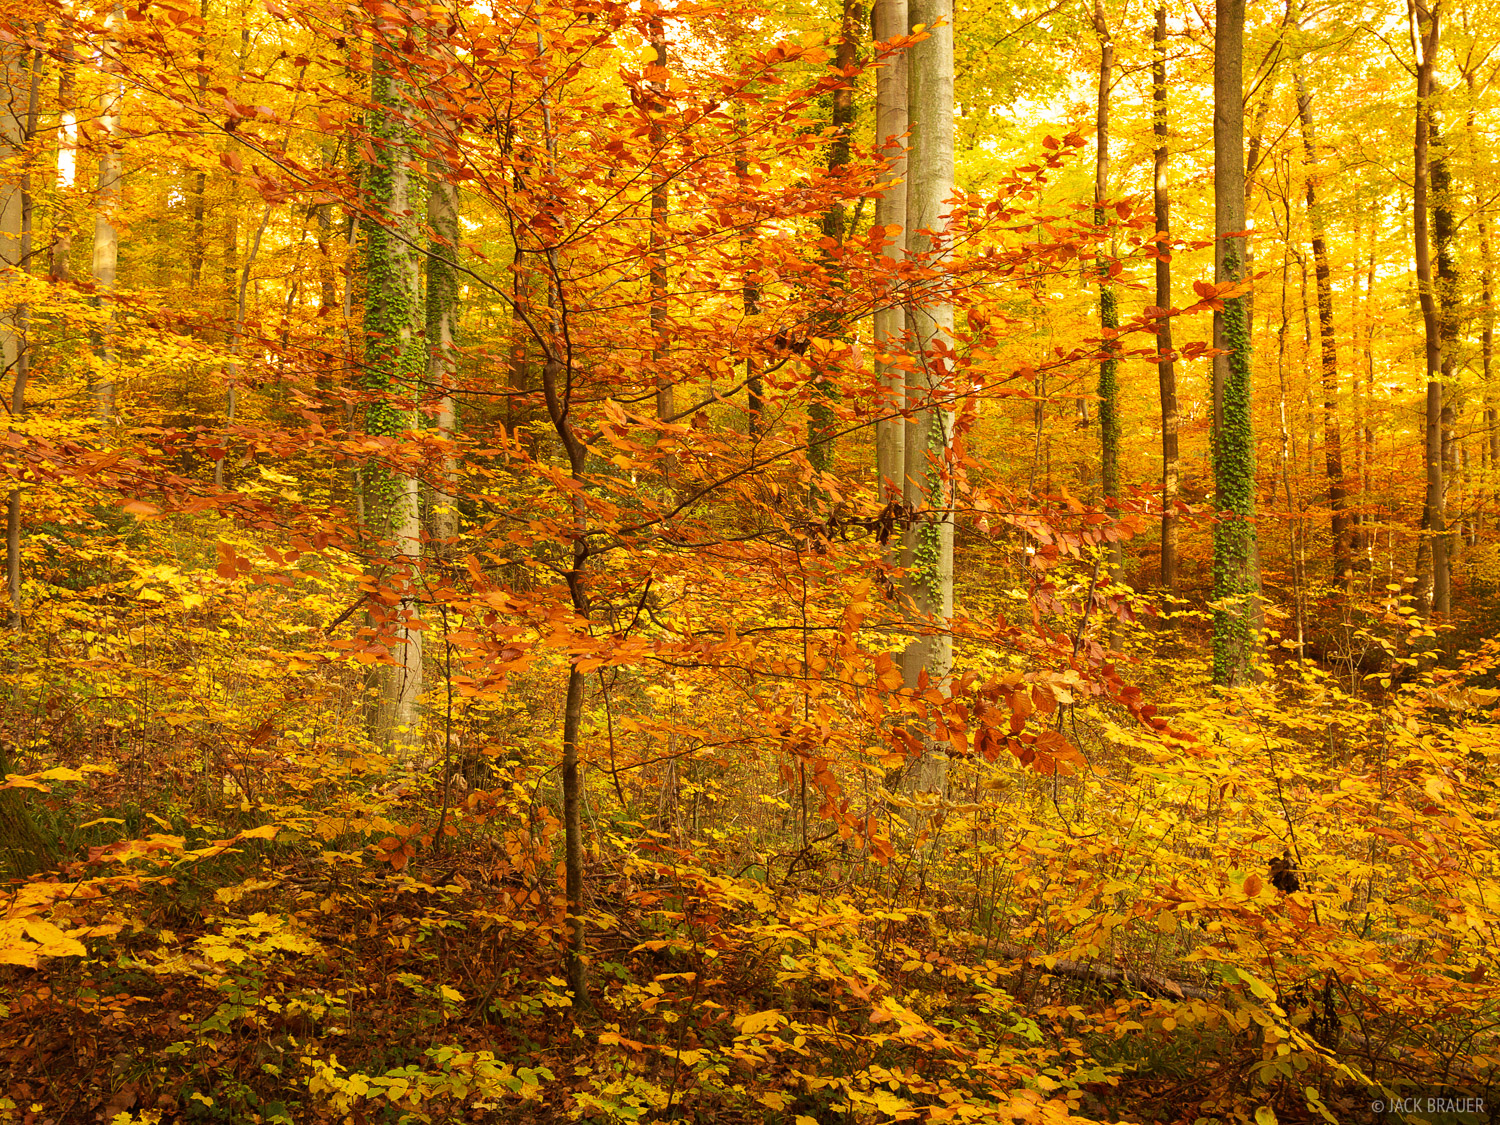 Brilliant autumn colors in the Black Forest near Freiburg, Germany.